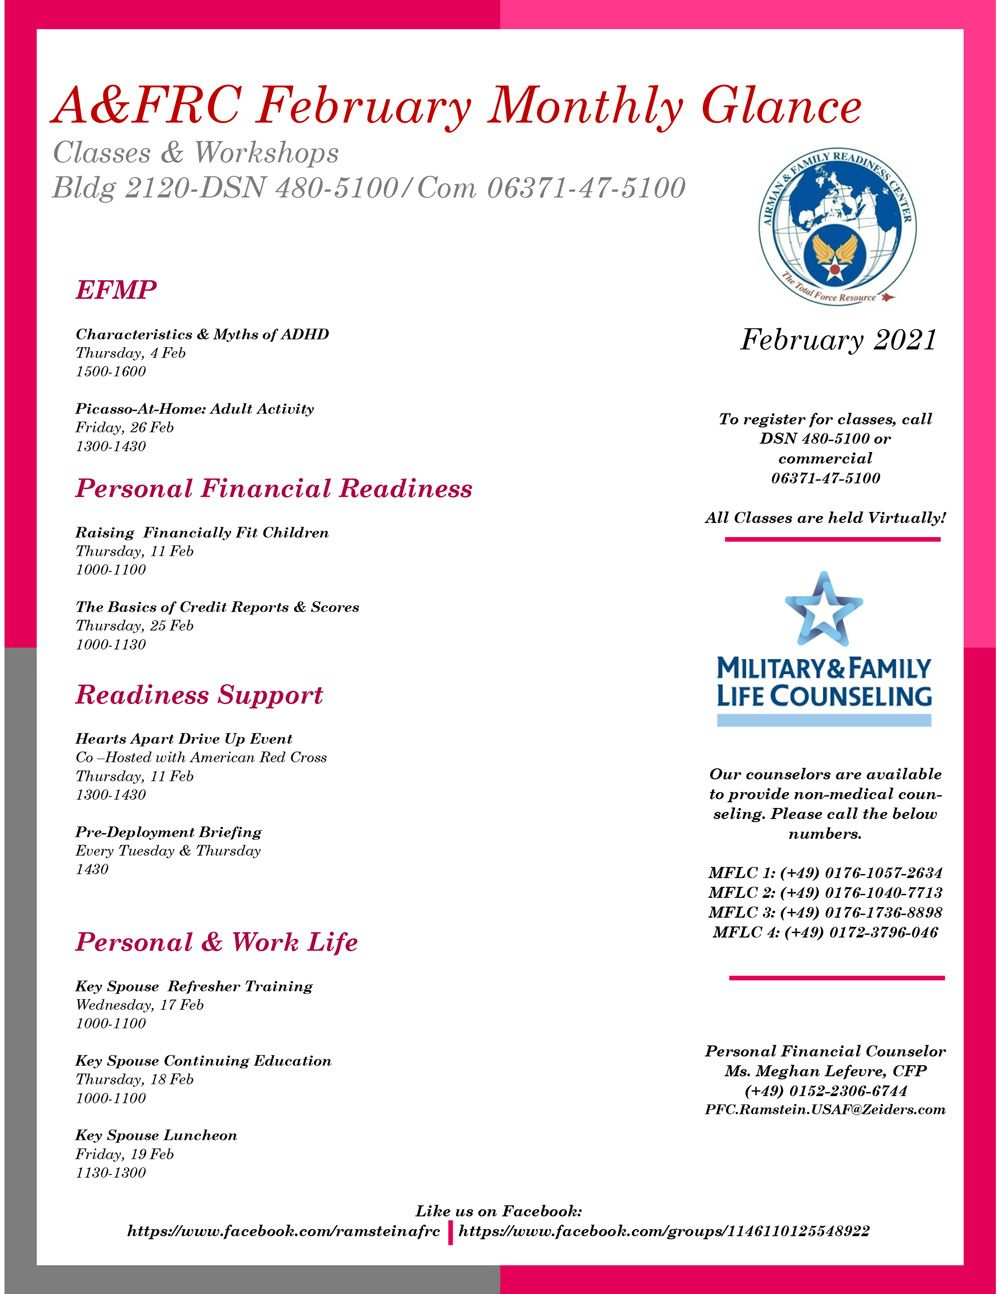 A&FRC February Monthly Glance